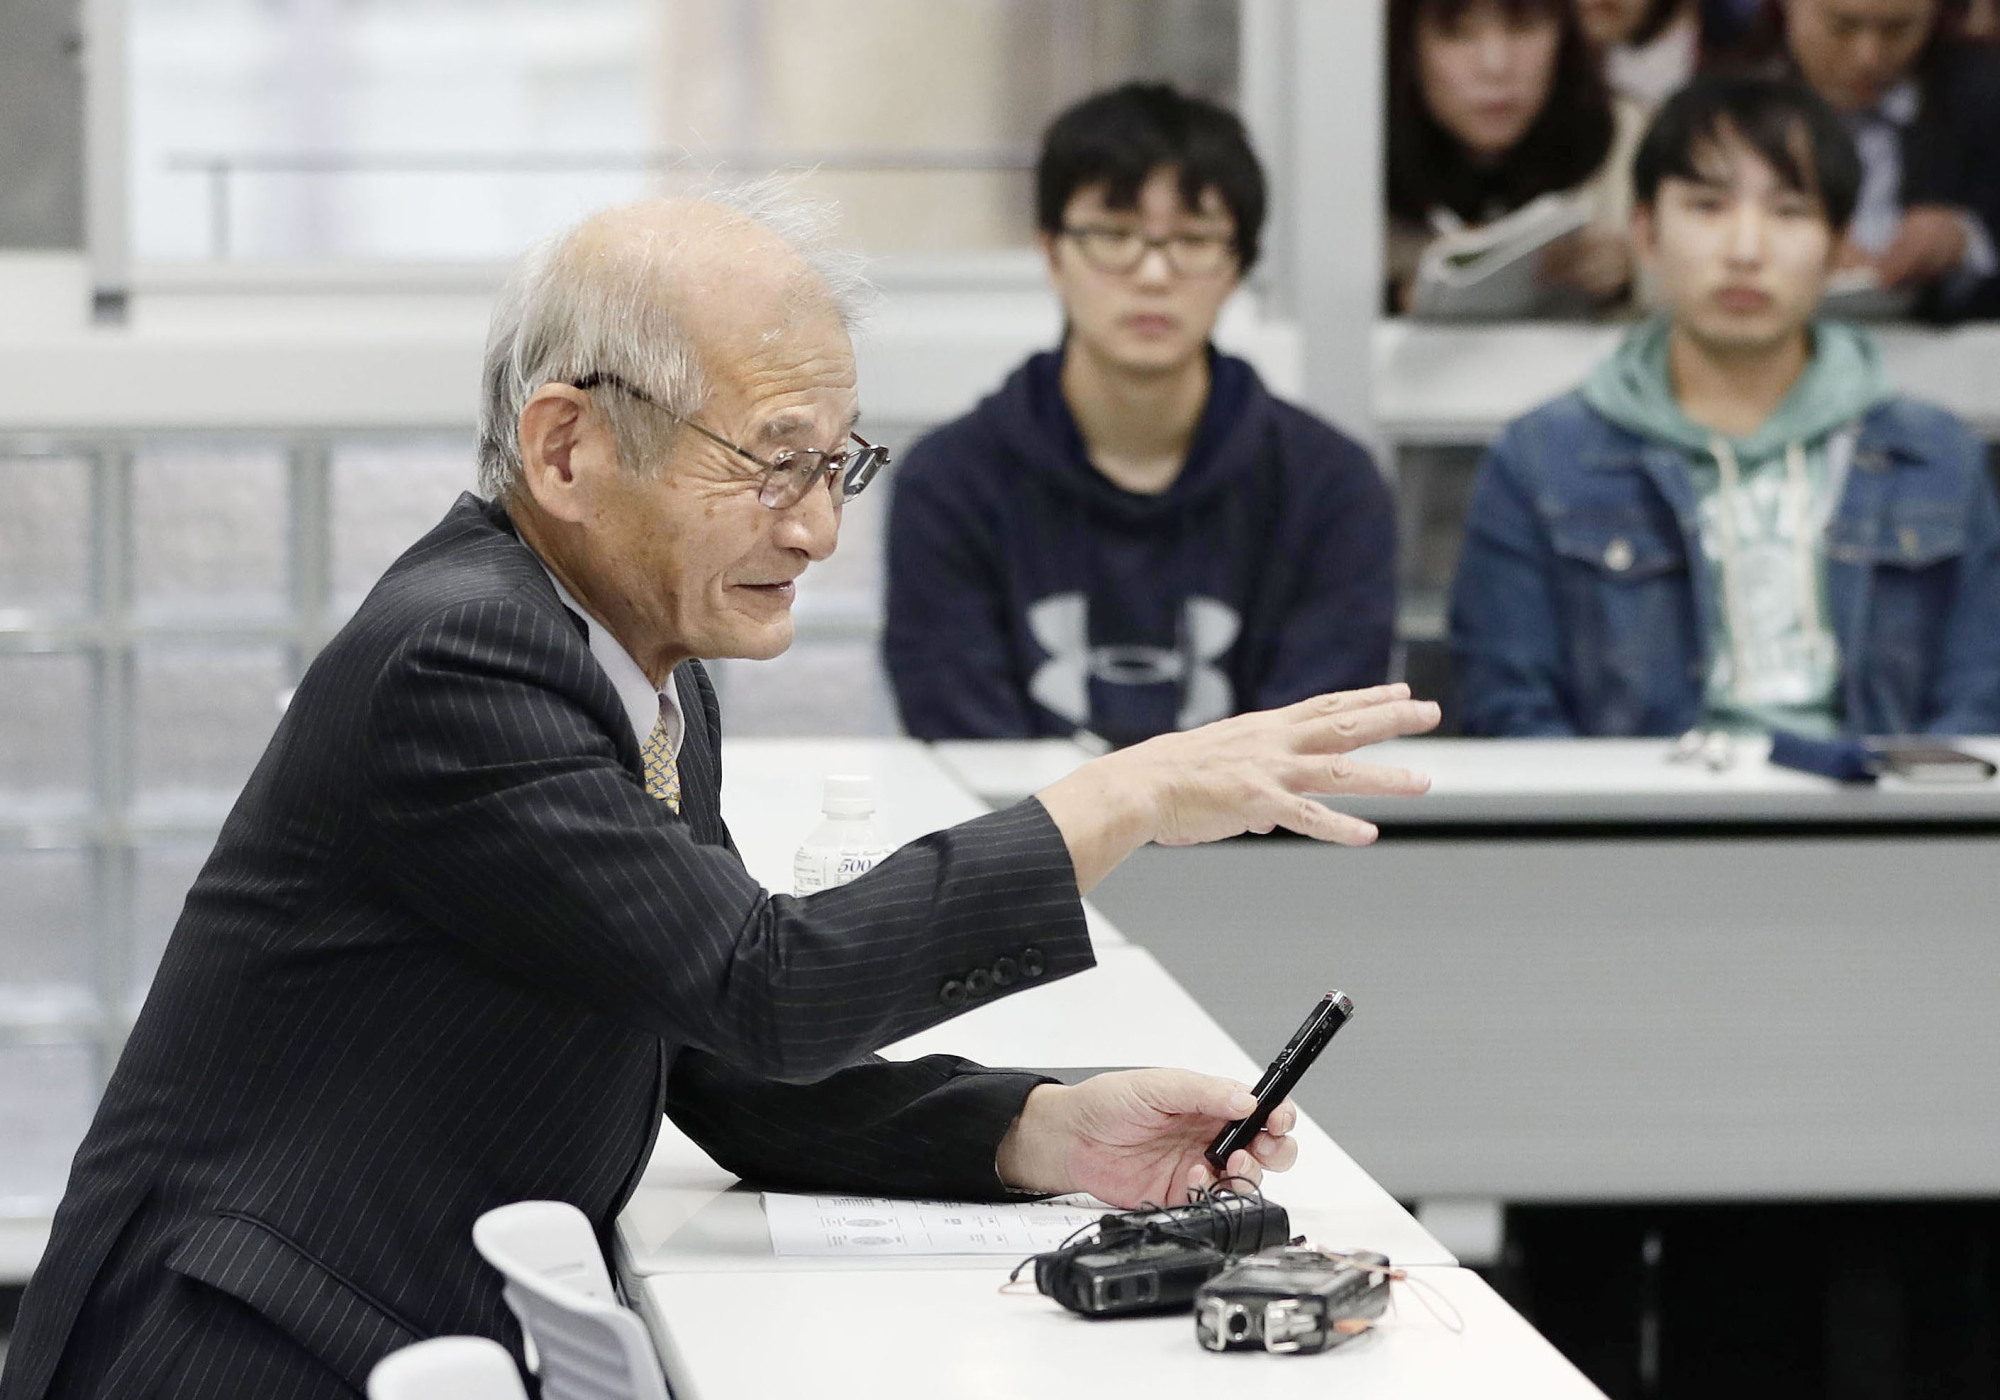 Akira Yoshino, joint winner of the 2019 Nobel Prize in chemistry, gives a lecture to students attending his class at Meijo University in Nagoya on Monday. | KYODO